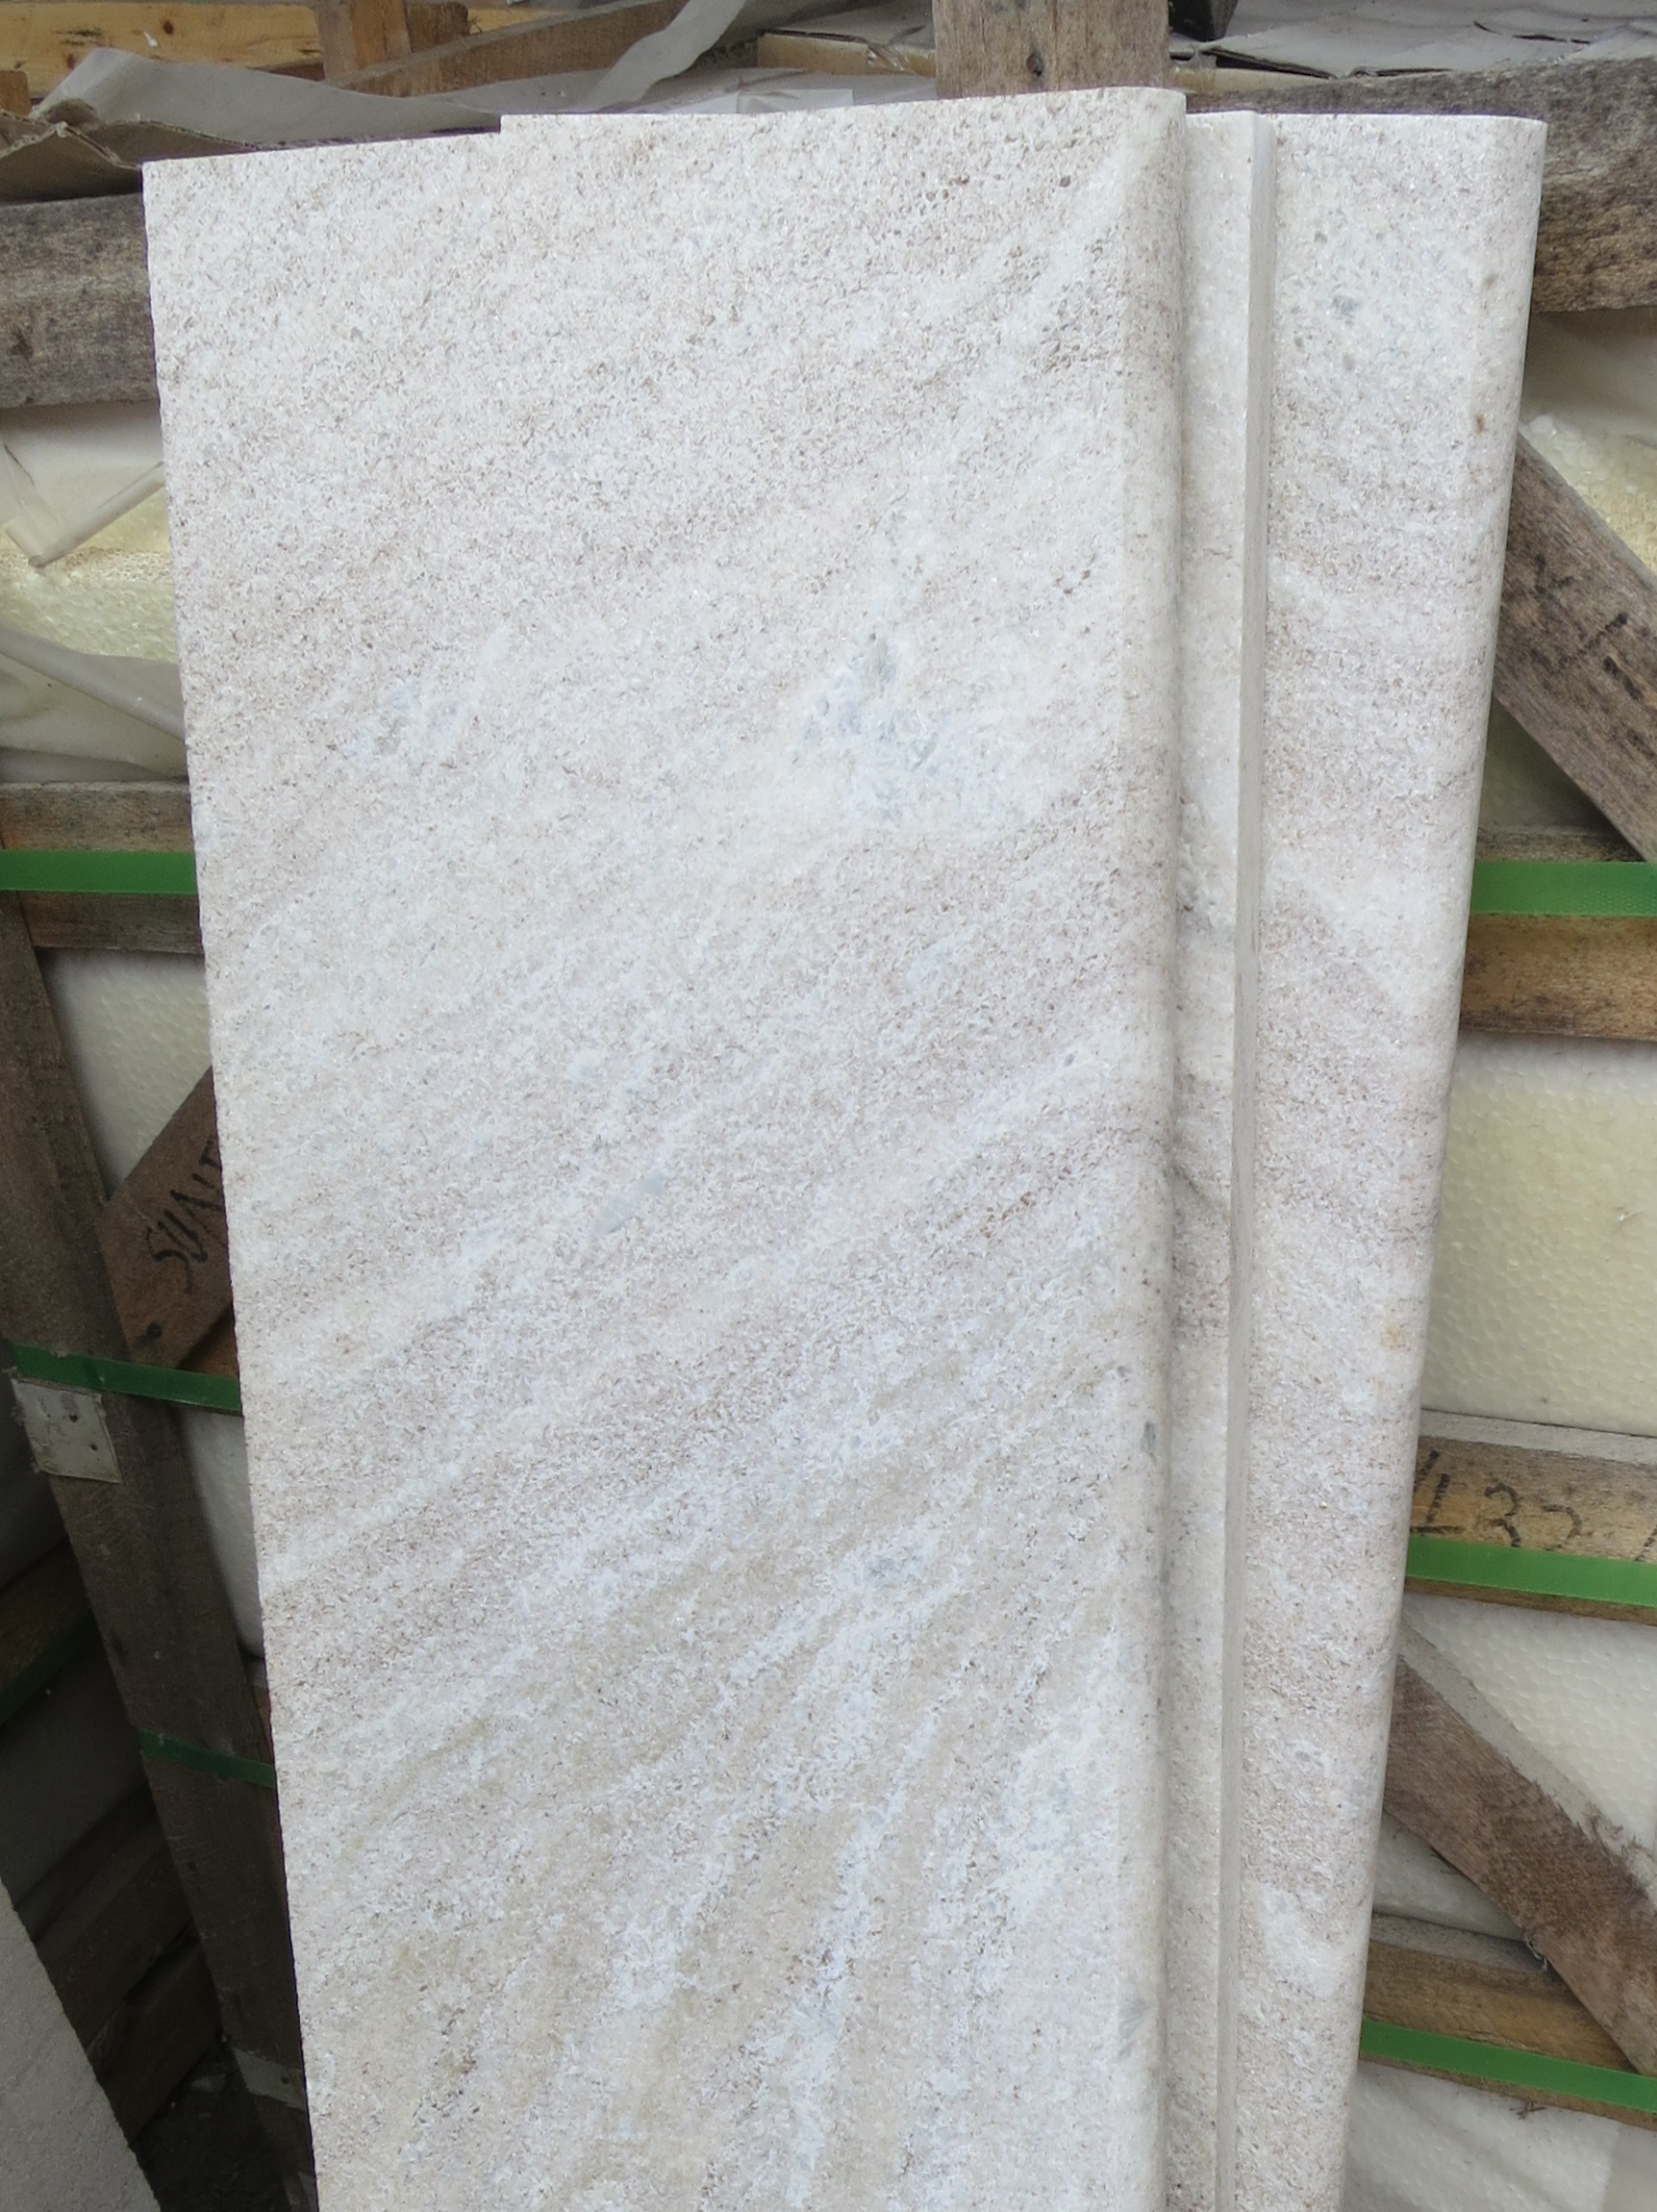 14. Crystallised quartzite steps. Durable and non-slippery surface with low absorption. Available in 20mm and 30mm thicnesses. Popular for use as swiming pool capping.